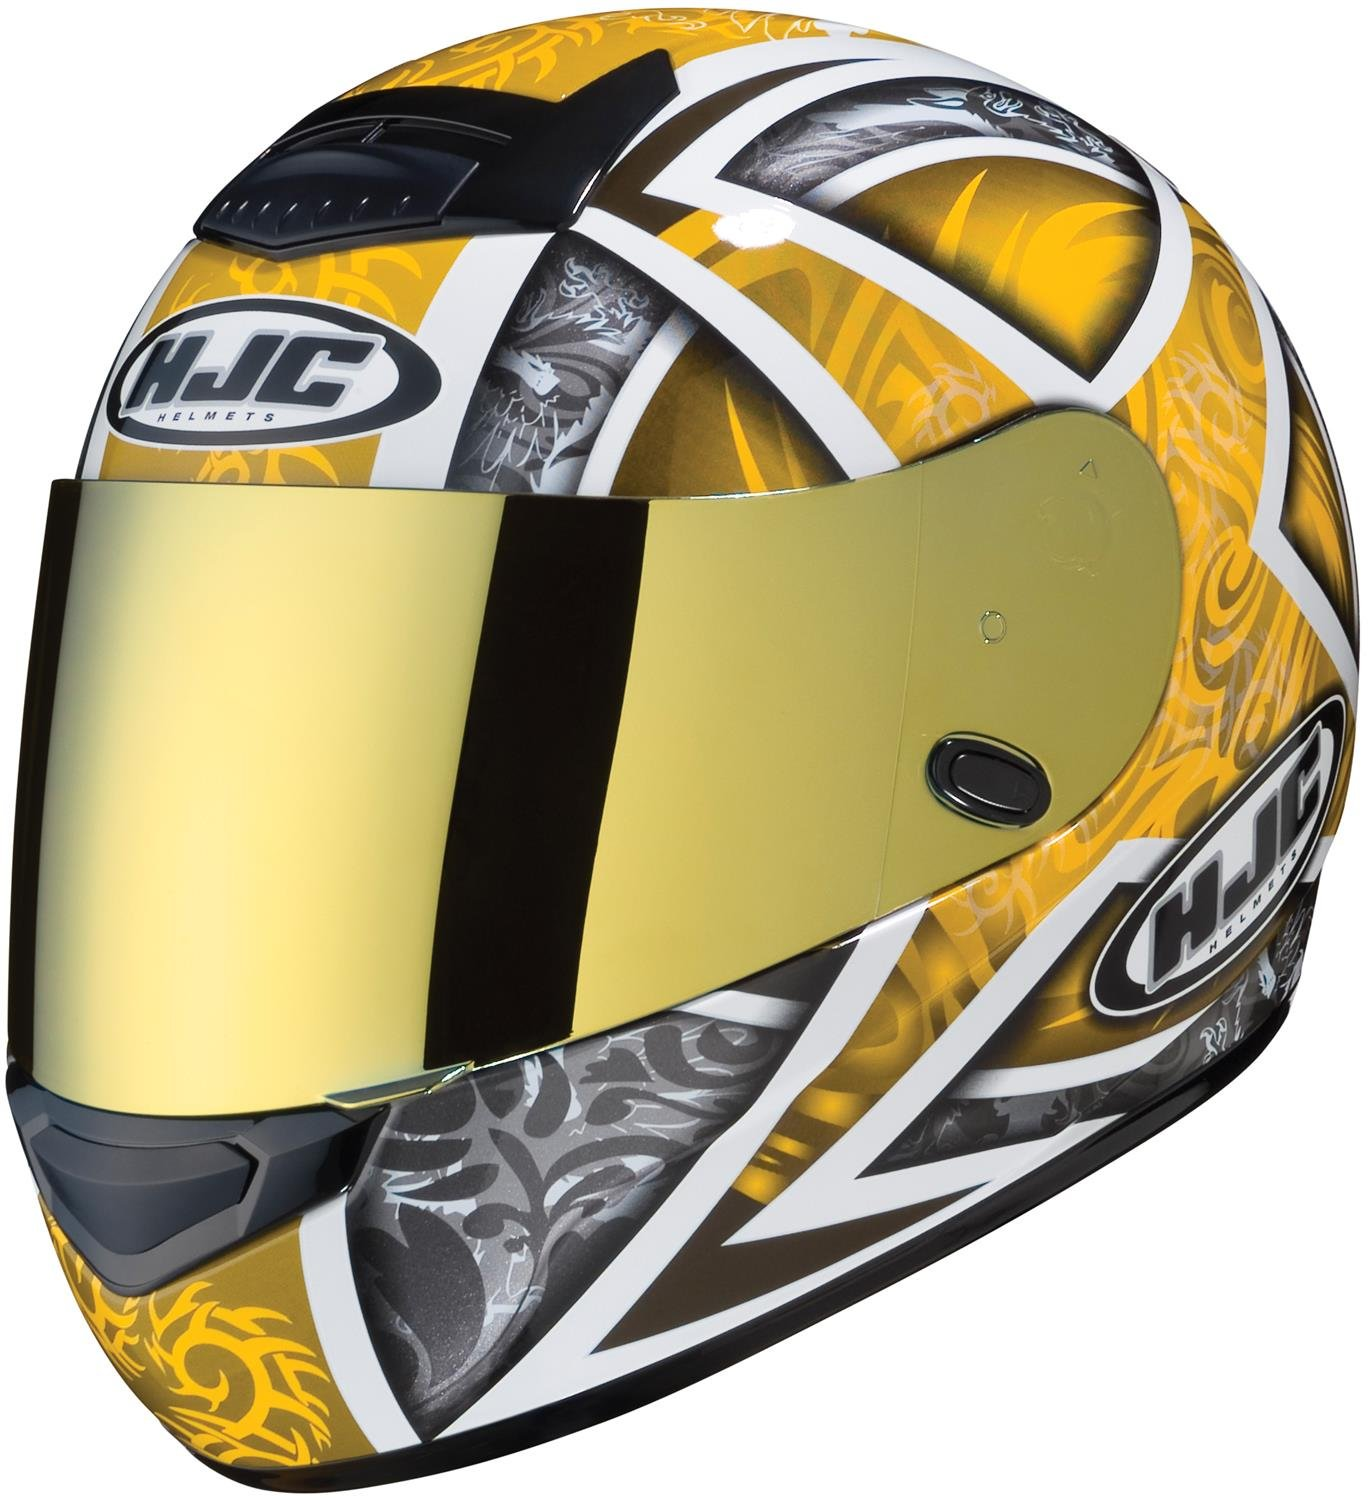 HJC Helmets HJ-17 Unisex-Adult Flip-Up-Helmet-Style Replacement Helmet Face Shield (Gold, One Size) 956-256